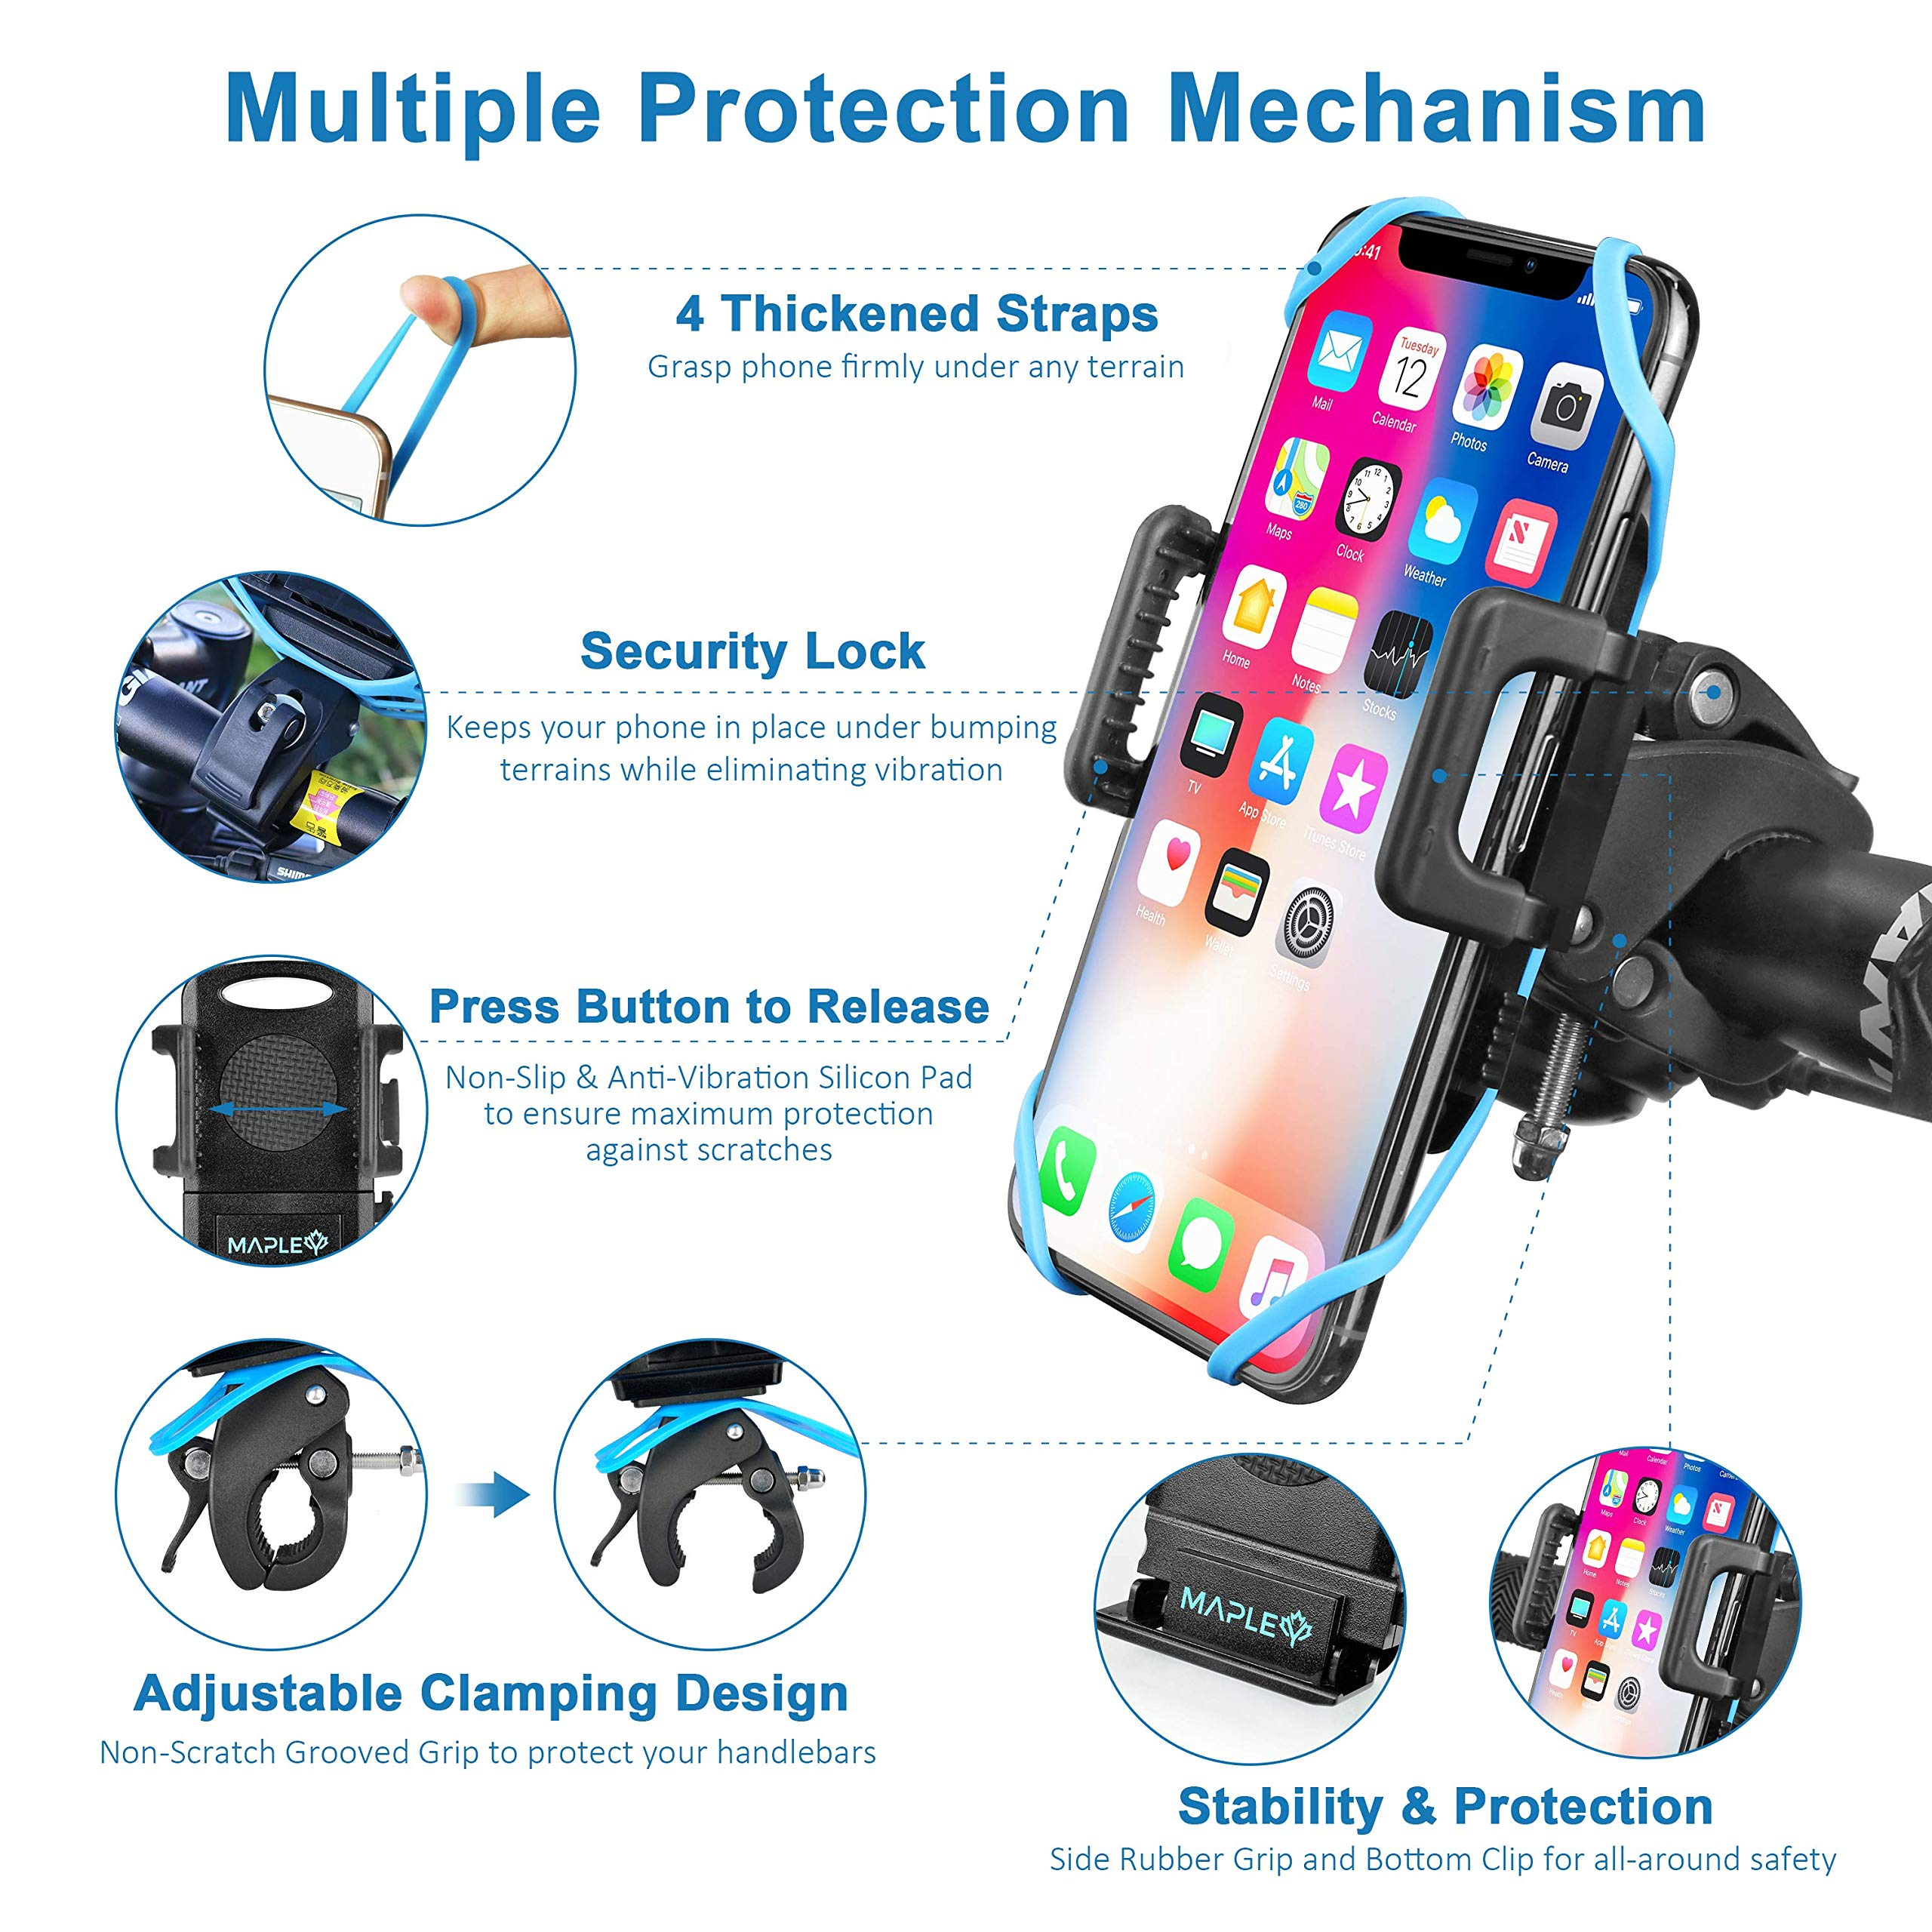 PREMIUM Bike Phone Holder Mount - Universal Mounts for Bicycle, Motorcycle, Motorbike, Moped, Scooter, Pram - All Handlebars & 360° - AntiShake & NonSlip - 3.5 to 6.5 Inch Smartphone - Waterproof